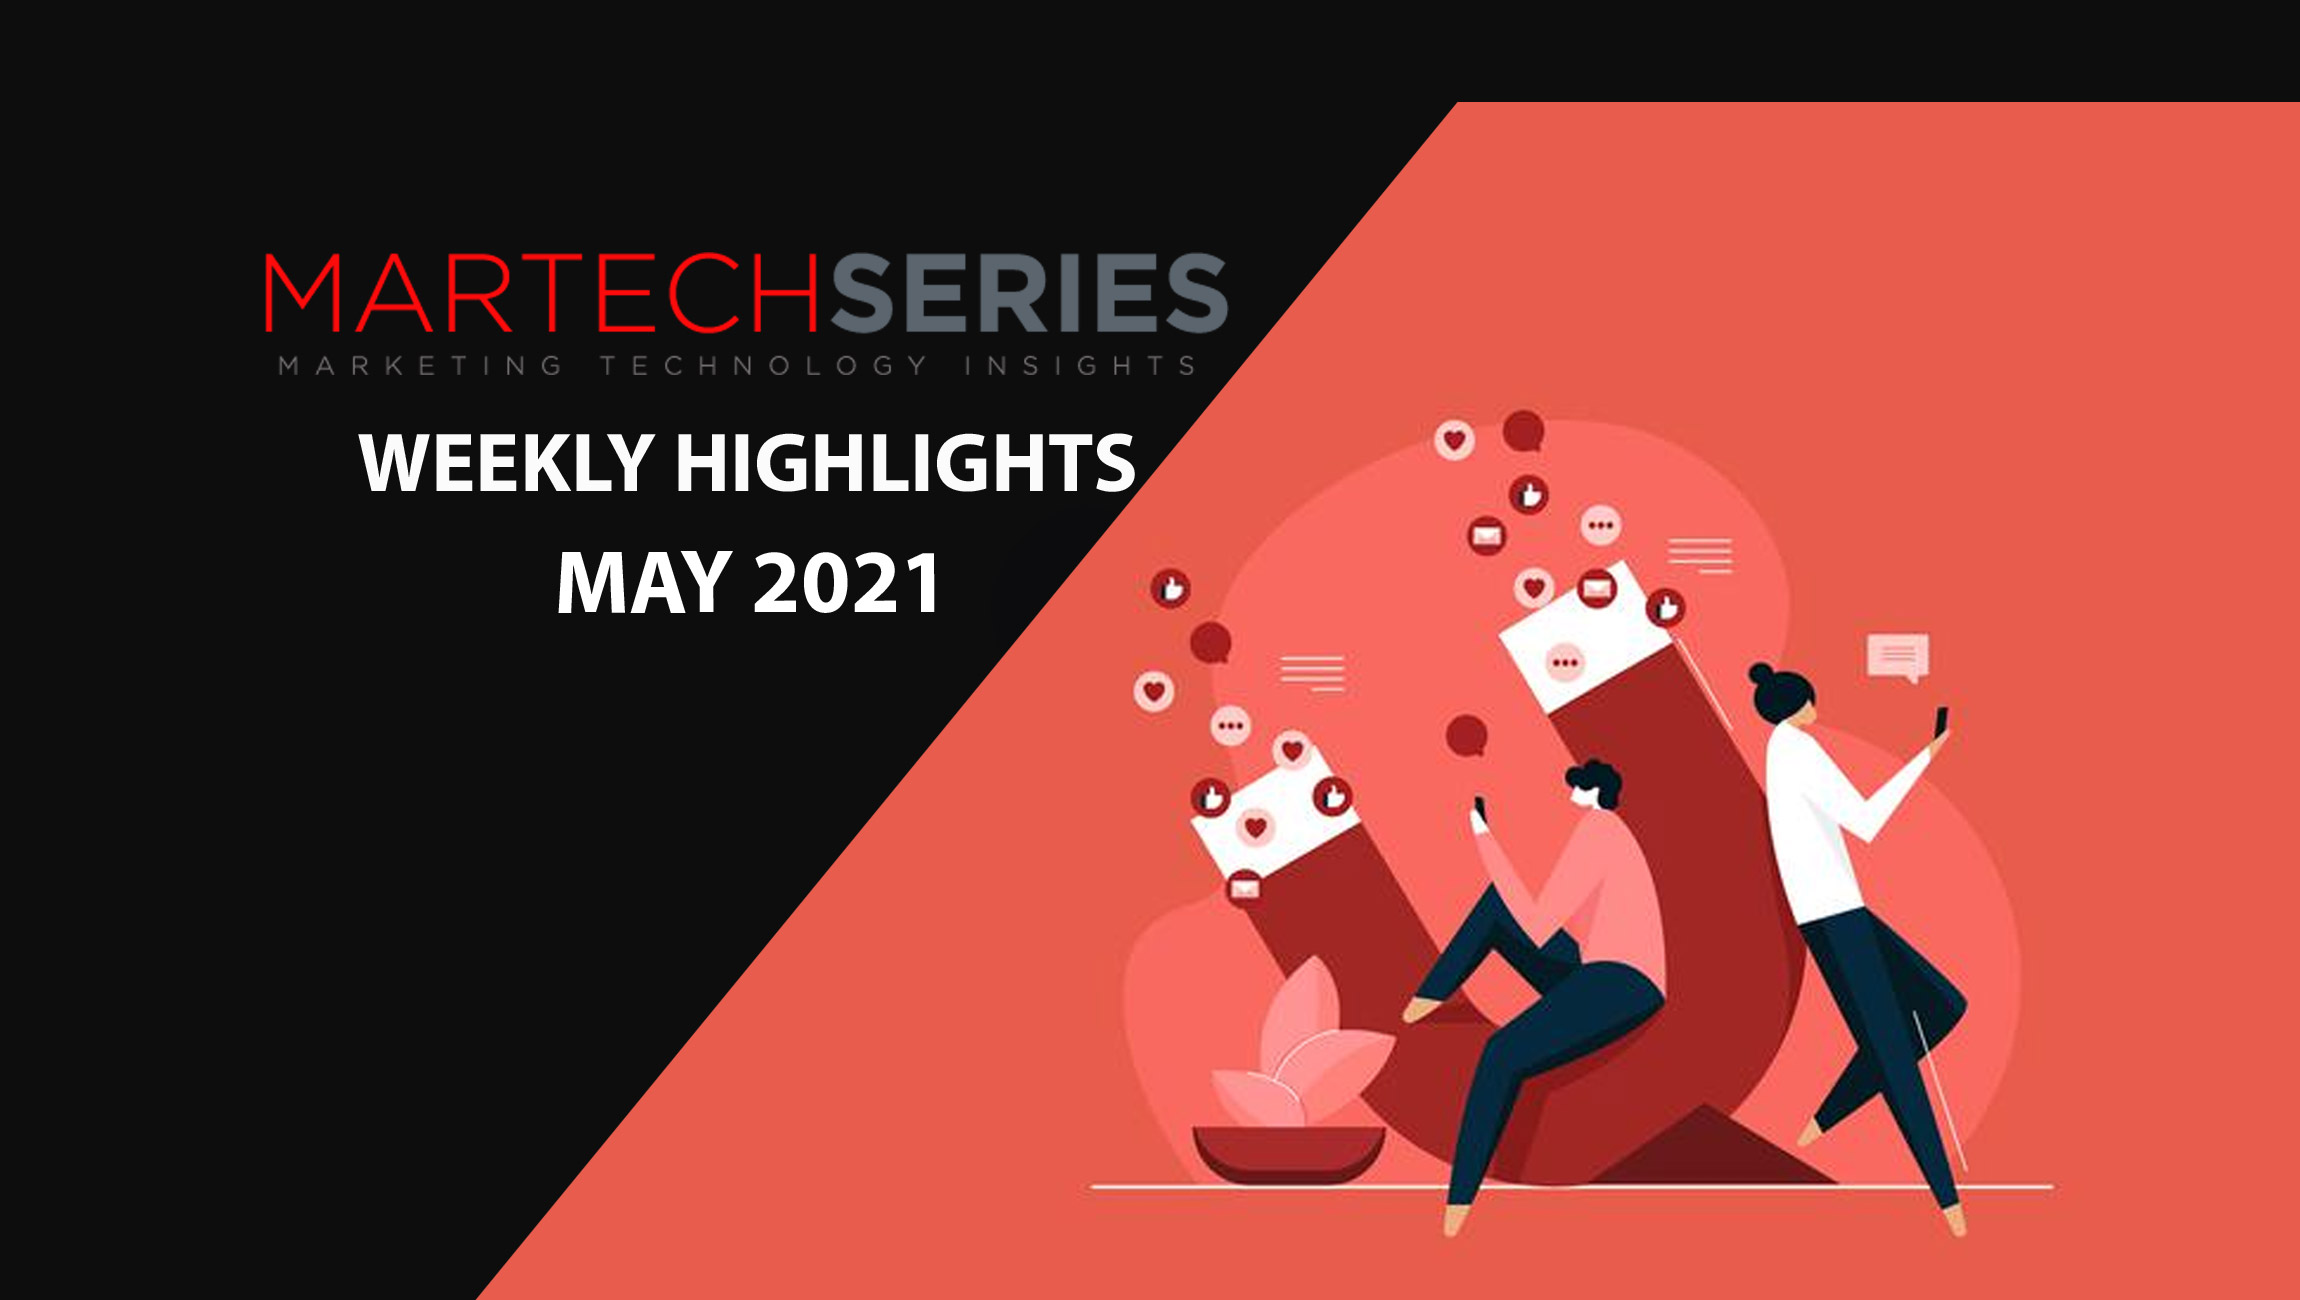 Marketing Technology Highlights of The Week: 10th-May-2021 Featuring Similarweb, Okta, RollWorks, Liveperson and more!